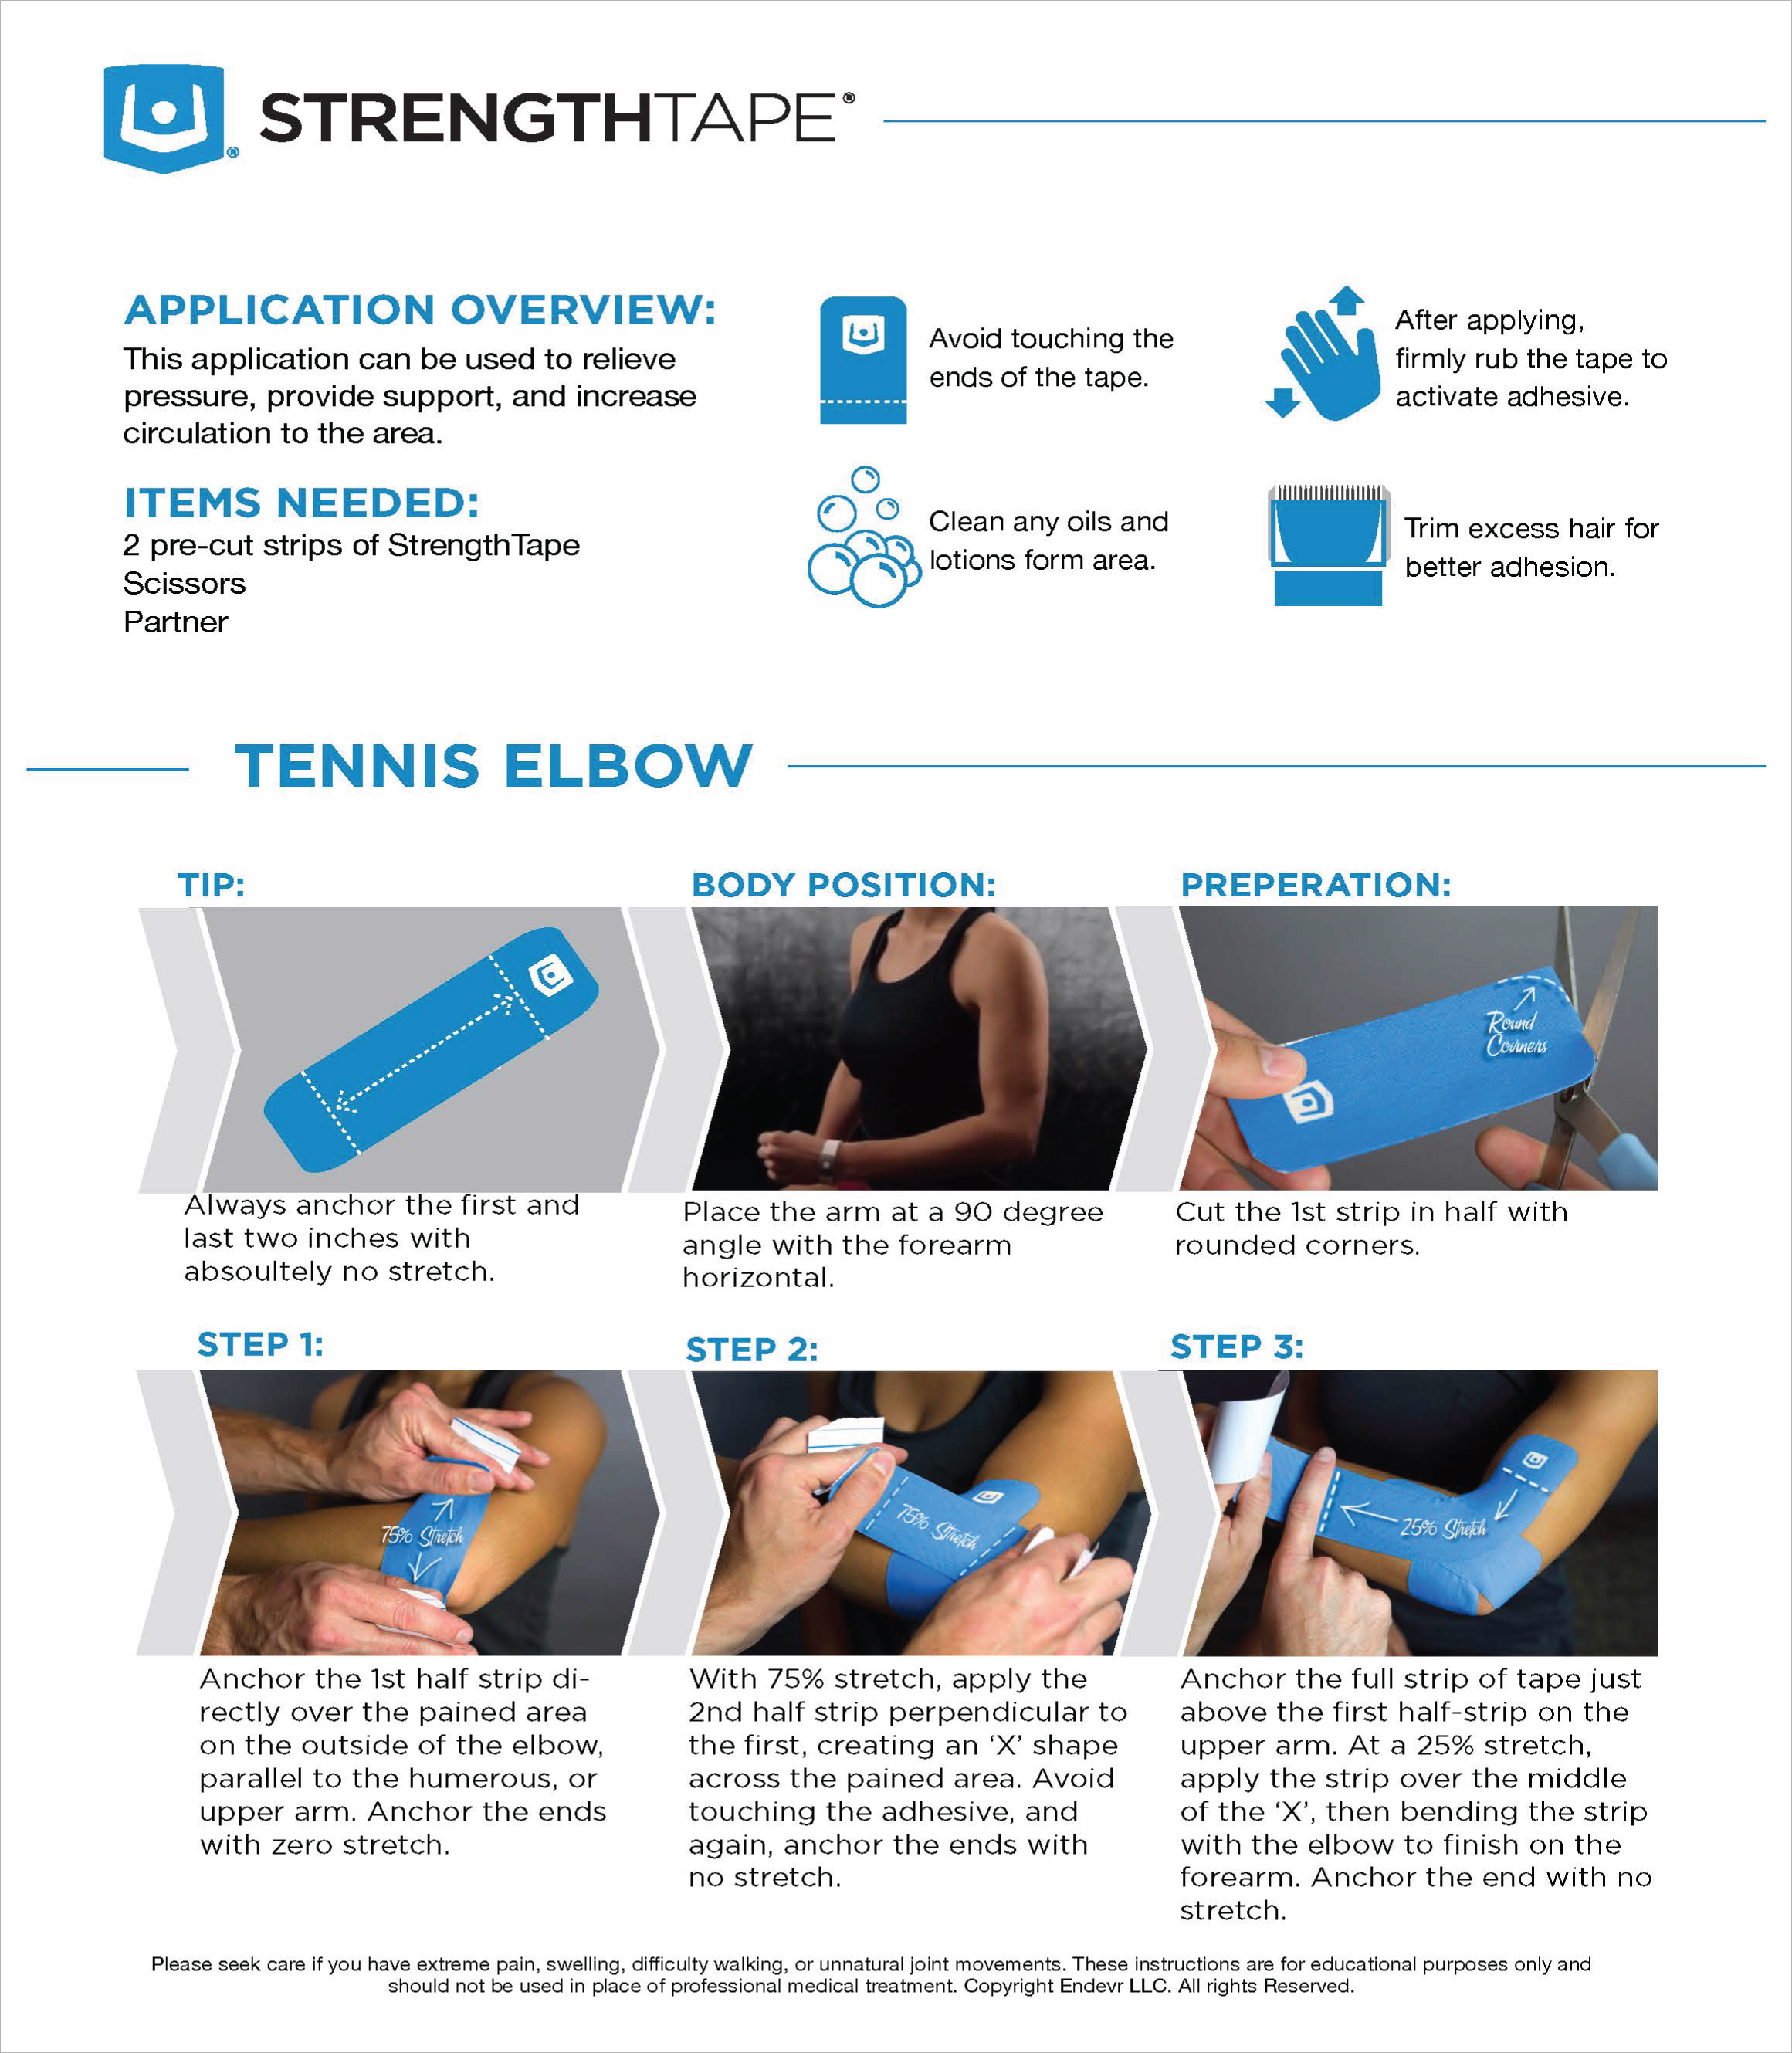 StrengthTape Tennis Elbow Taping Instructions